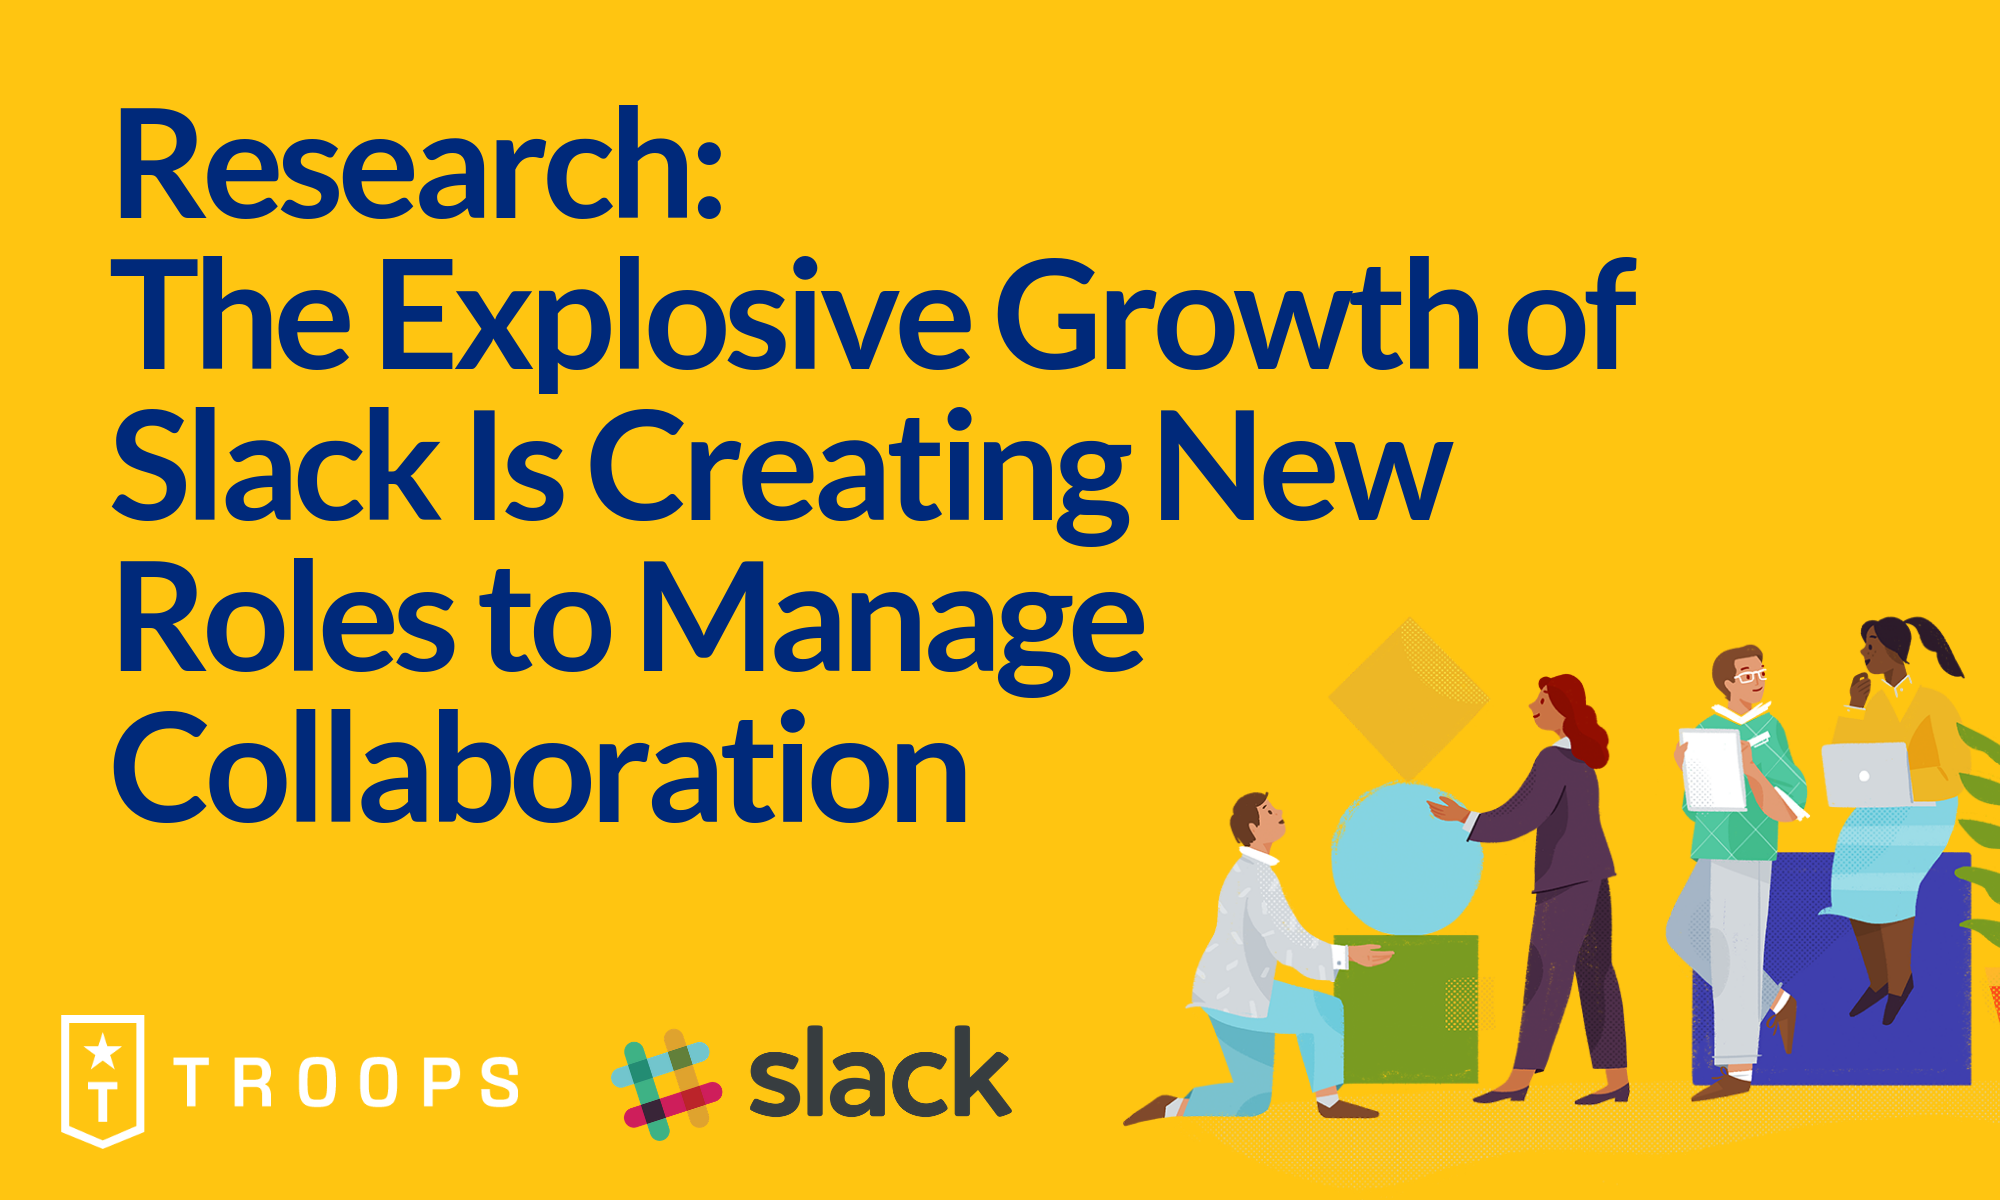 Research: The Explosive Growth of Slack Is Creating New Roles to Manage Collaboration